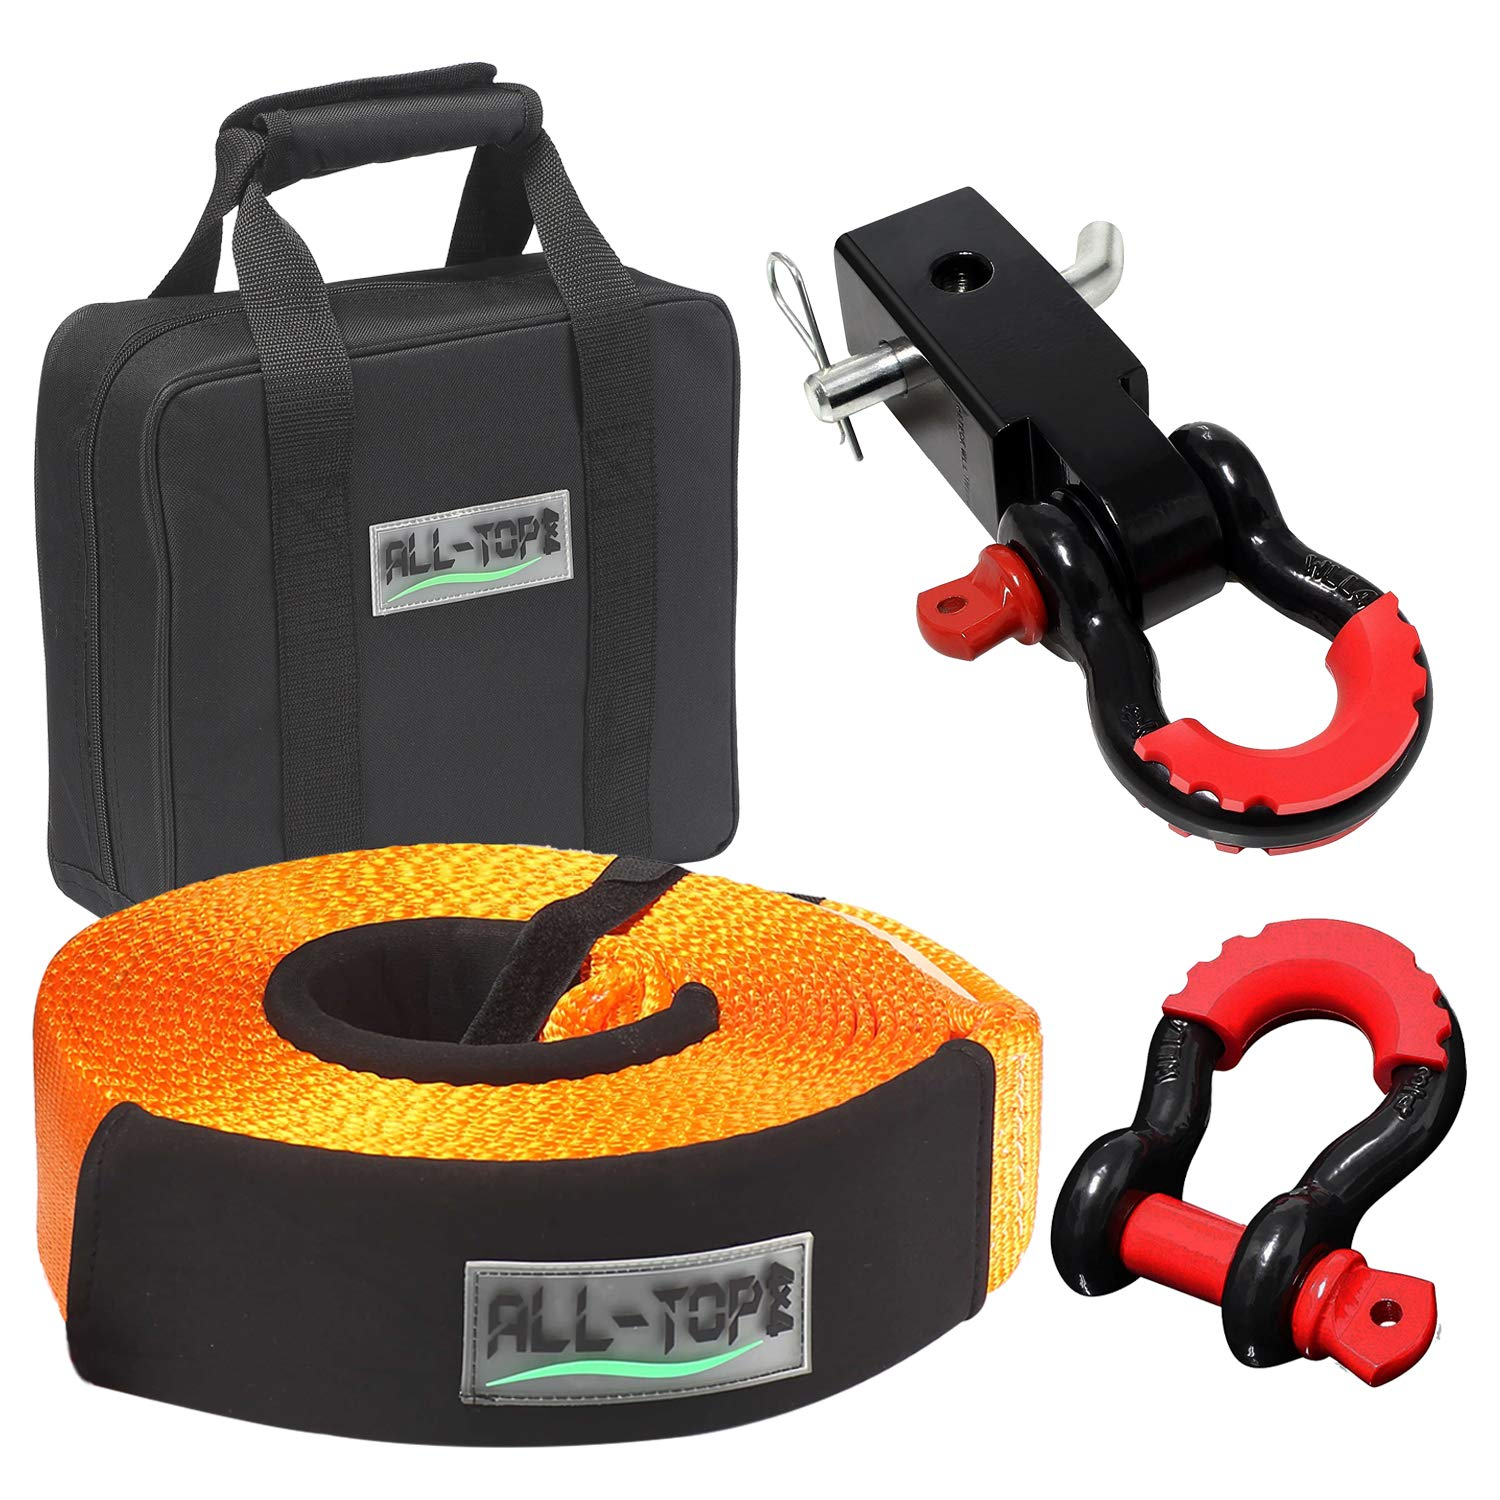 2pcs 3//4 Heavy Duty D Ring Shackles ALL-TOP 4x4 Recovery Gear Kit with Hitch Receiver: 3 inch x 30 ft 100/% Nylon Snatch Strap +Storage Bag 2 Aluminium Shackle Hitch Receiver 32,000 lbs